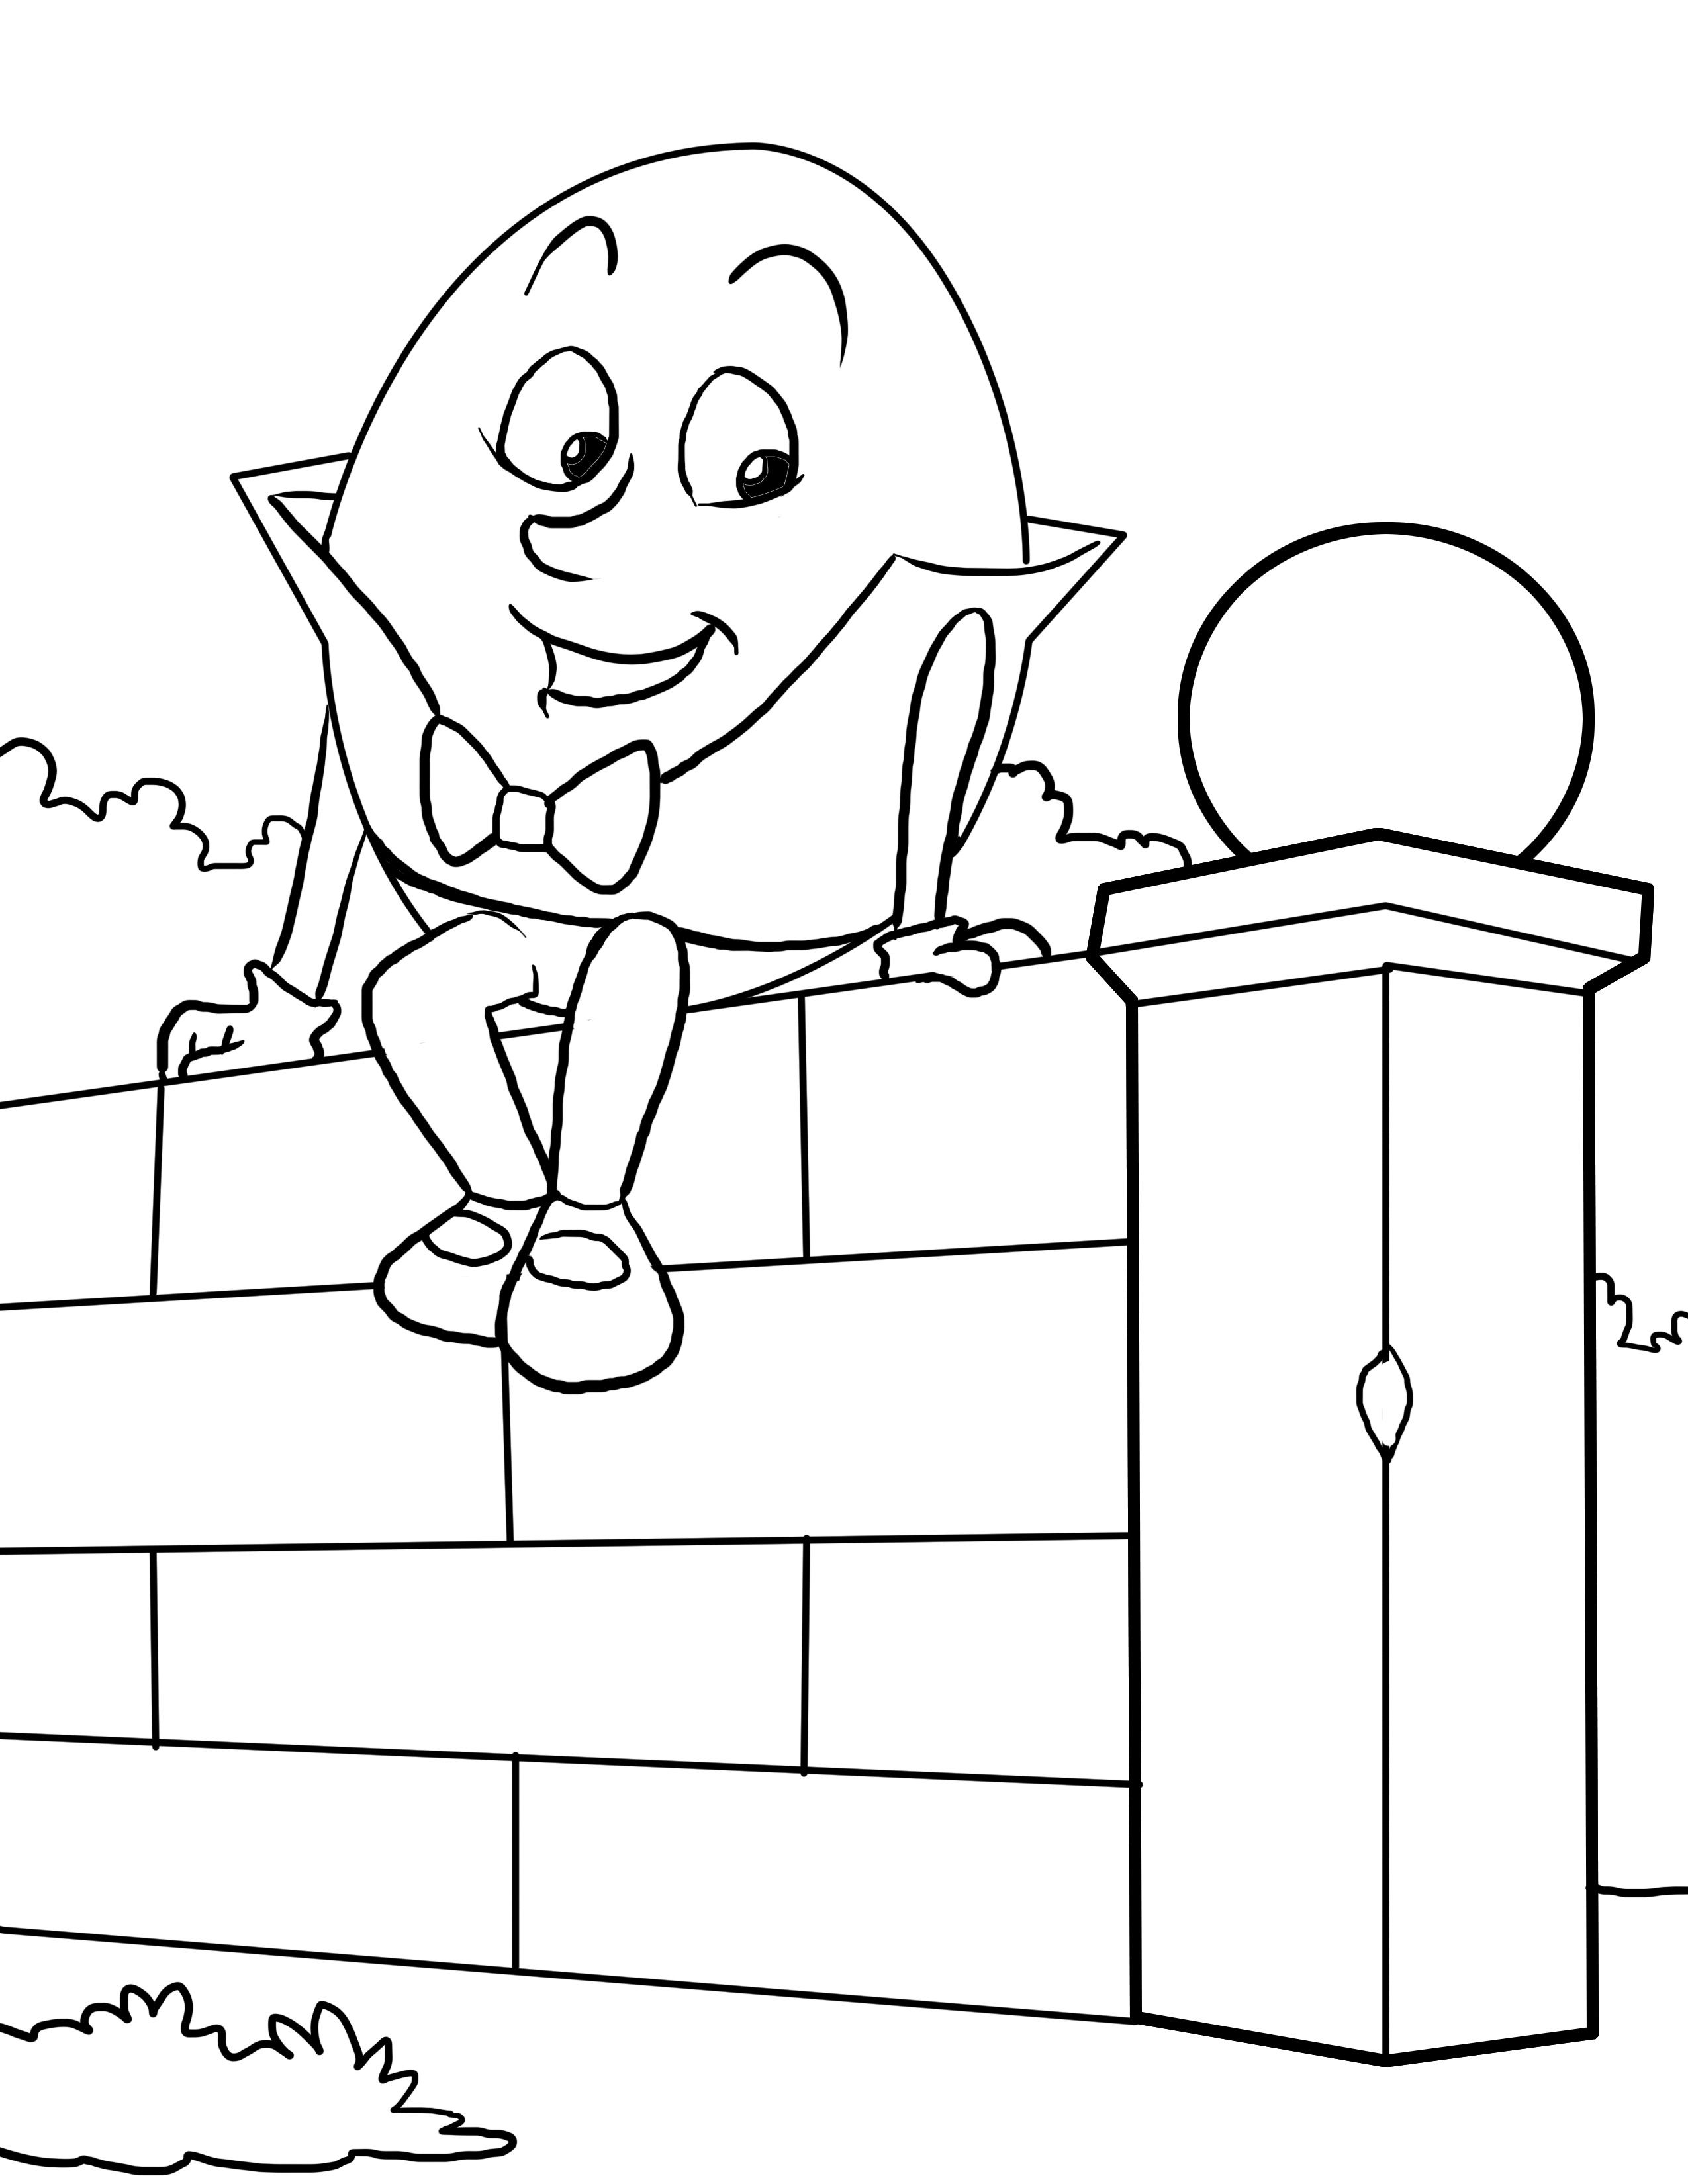 Humpty Dumpty Coloring Worksheet For Nursery Printable